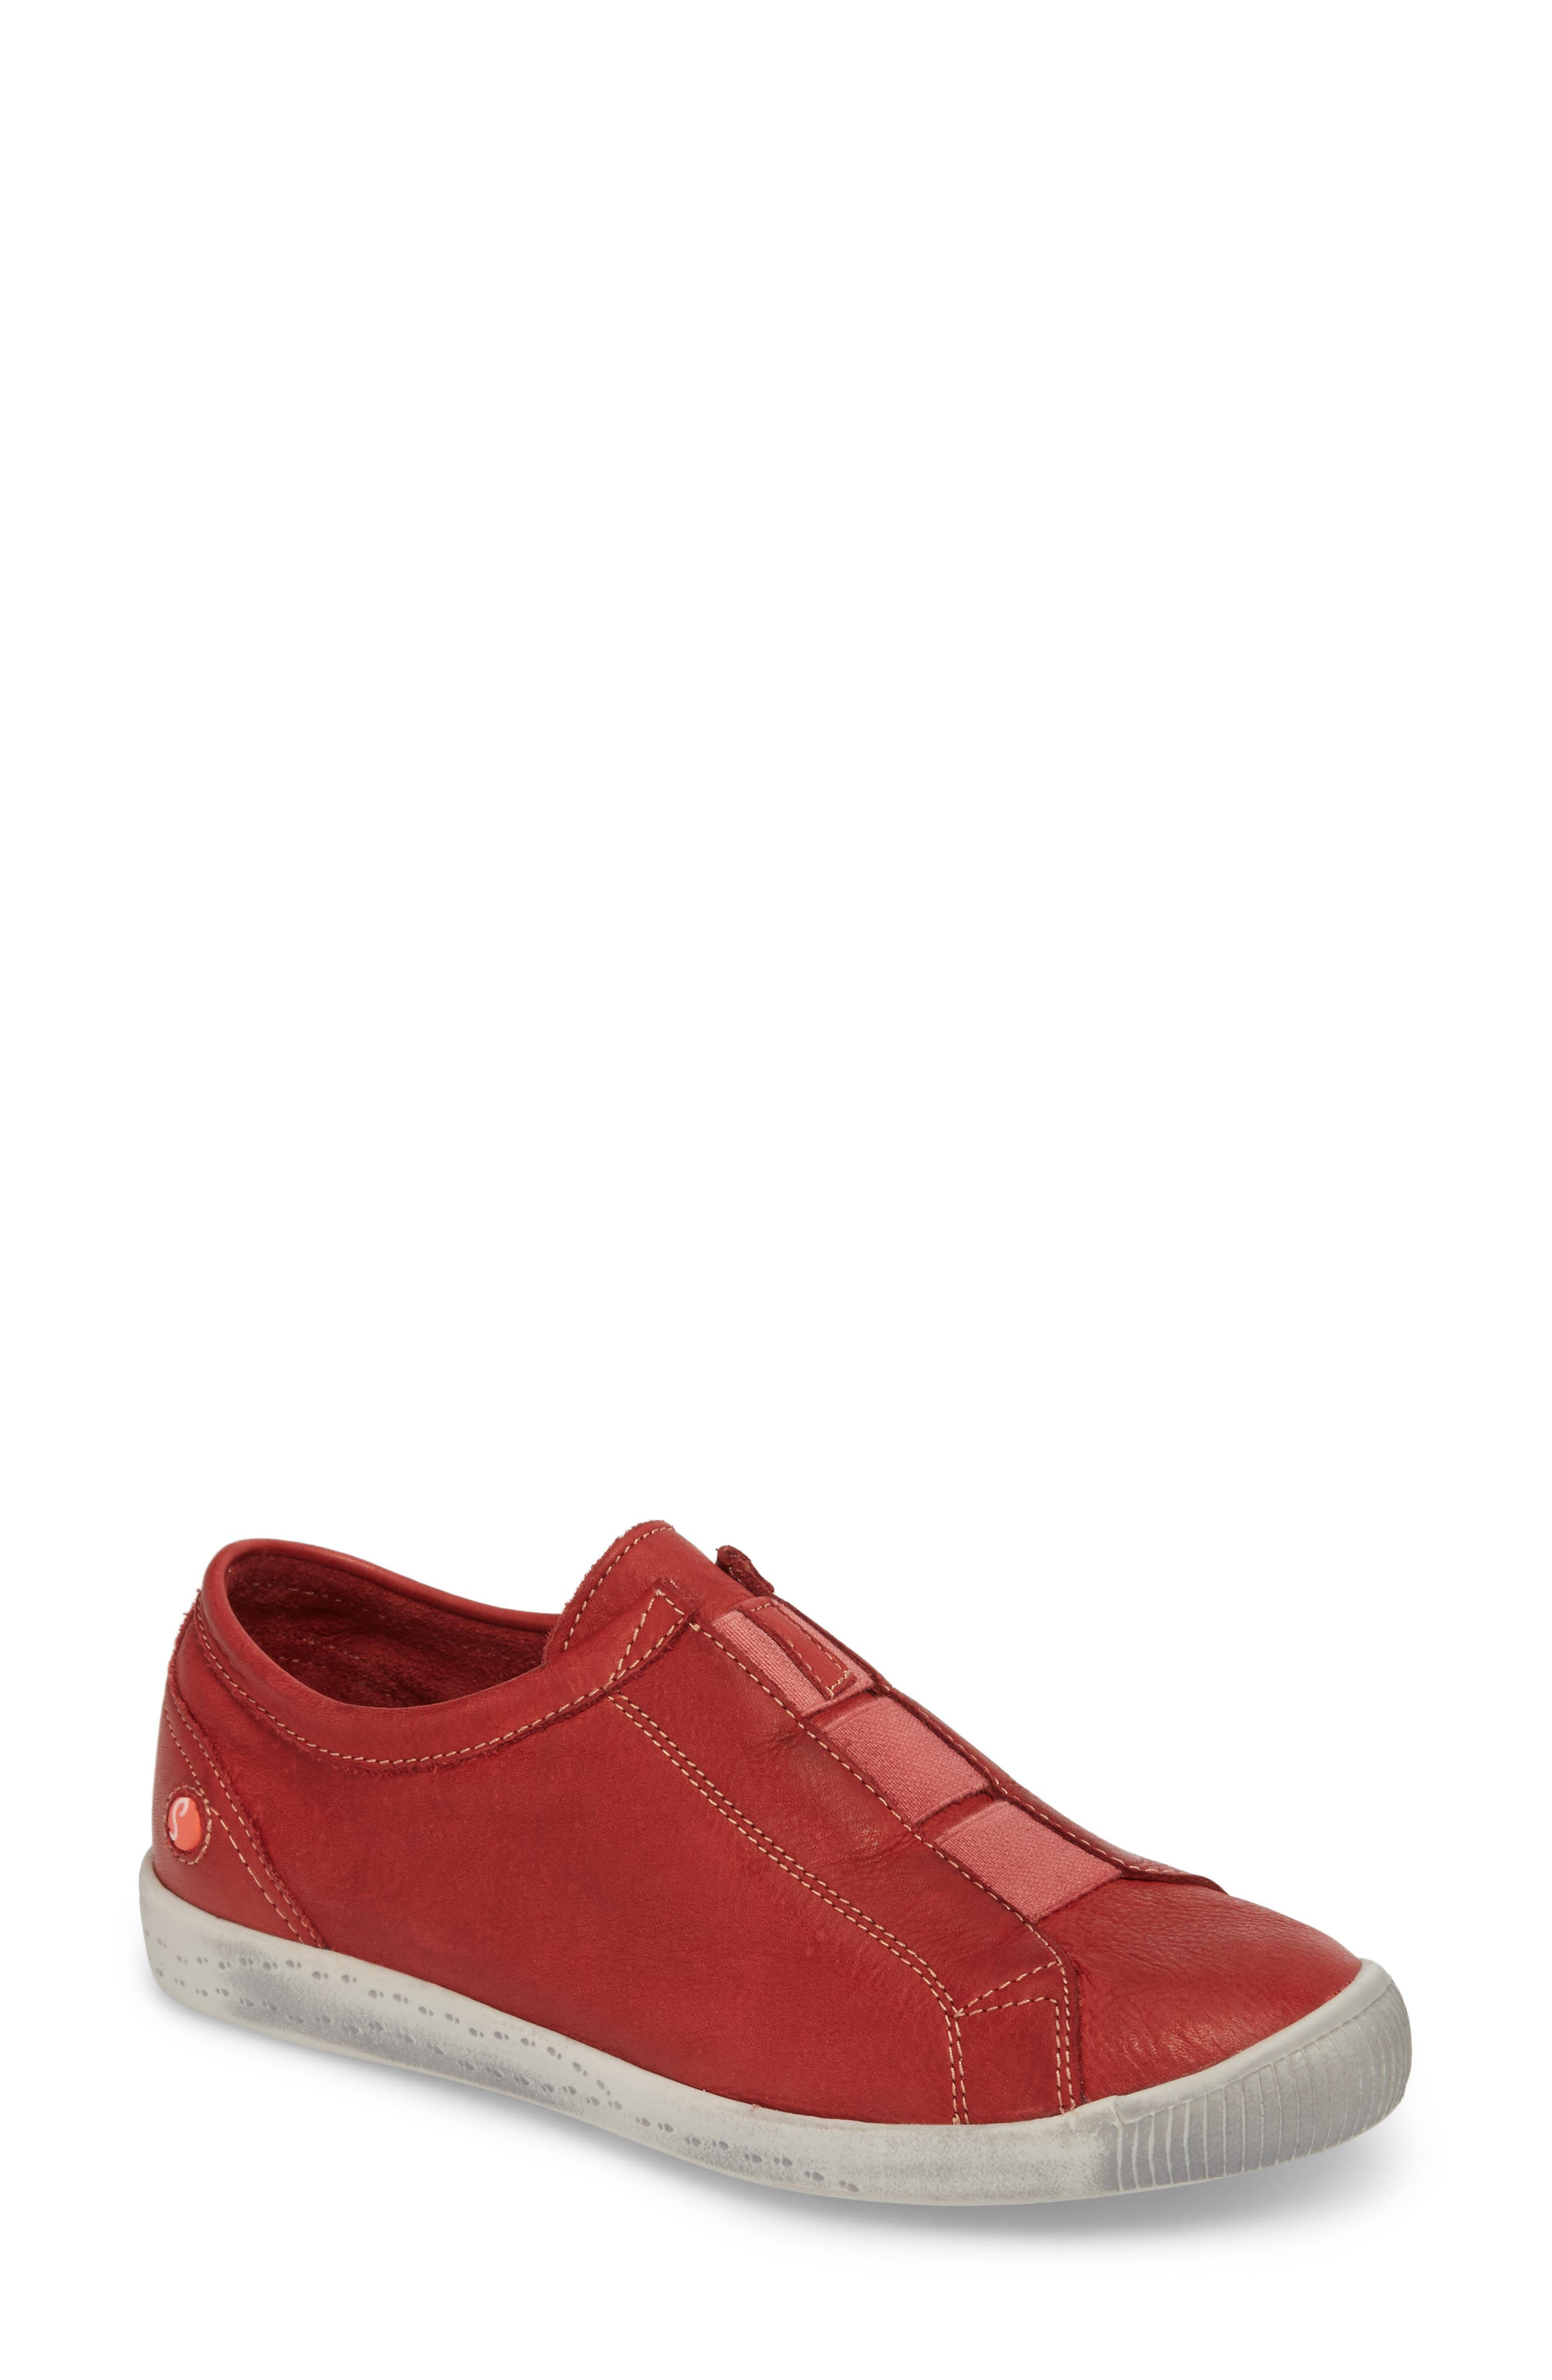 INI453SOF Slip-On Sneaker,                             Main thumbnail 1, color,                             Red Leather